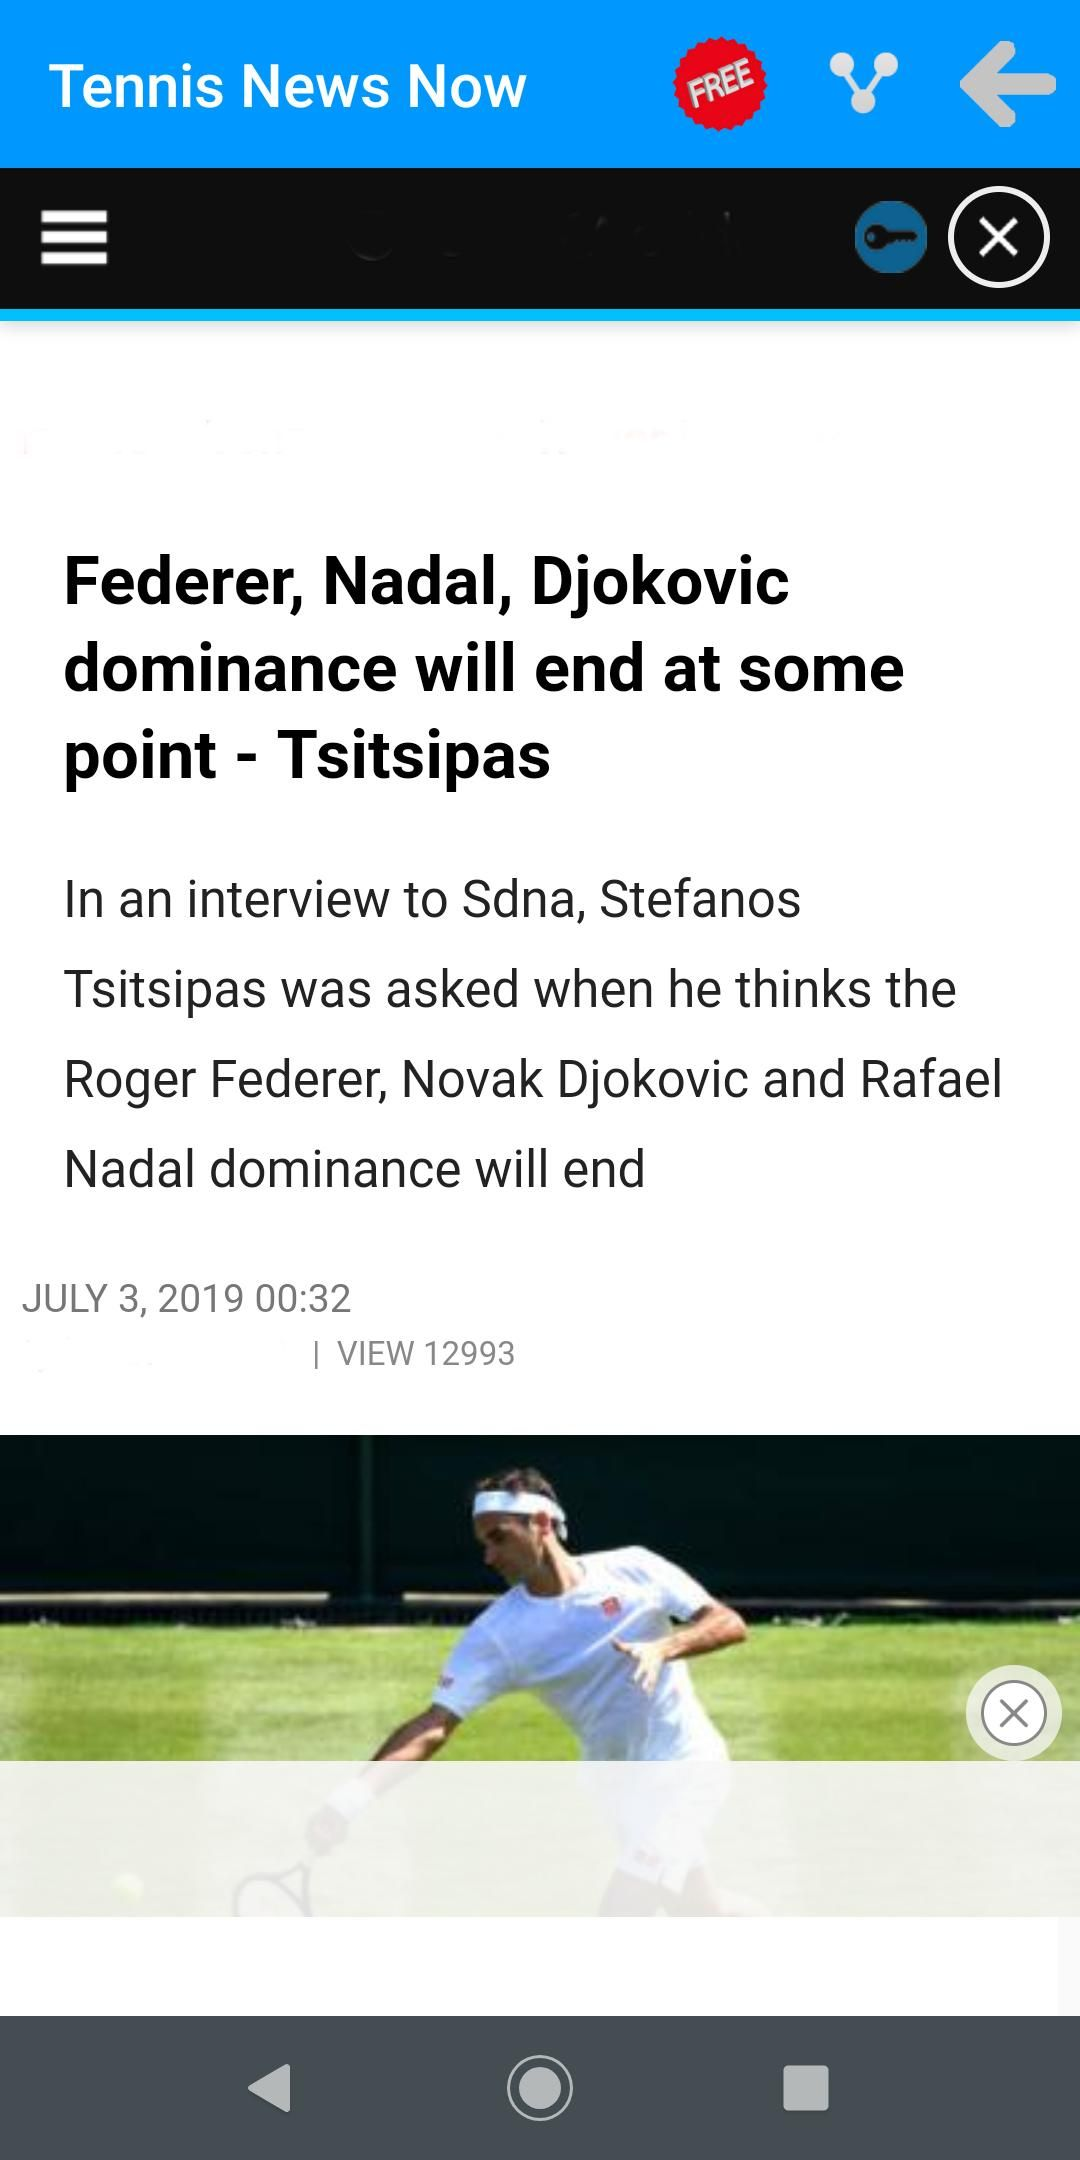 Tennis News Now For Android Apk Download In 2020 Tennis News Tennis News